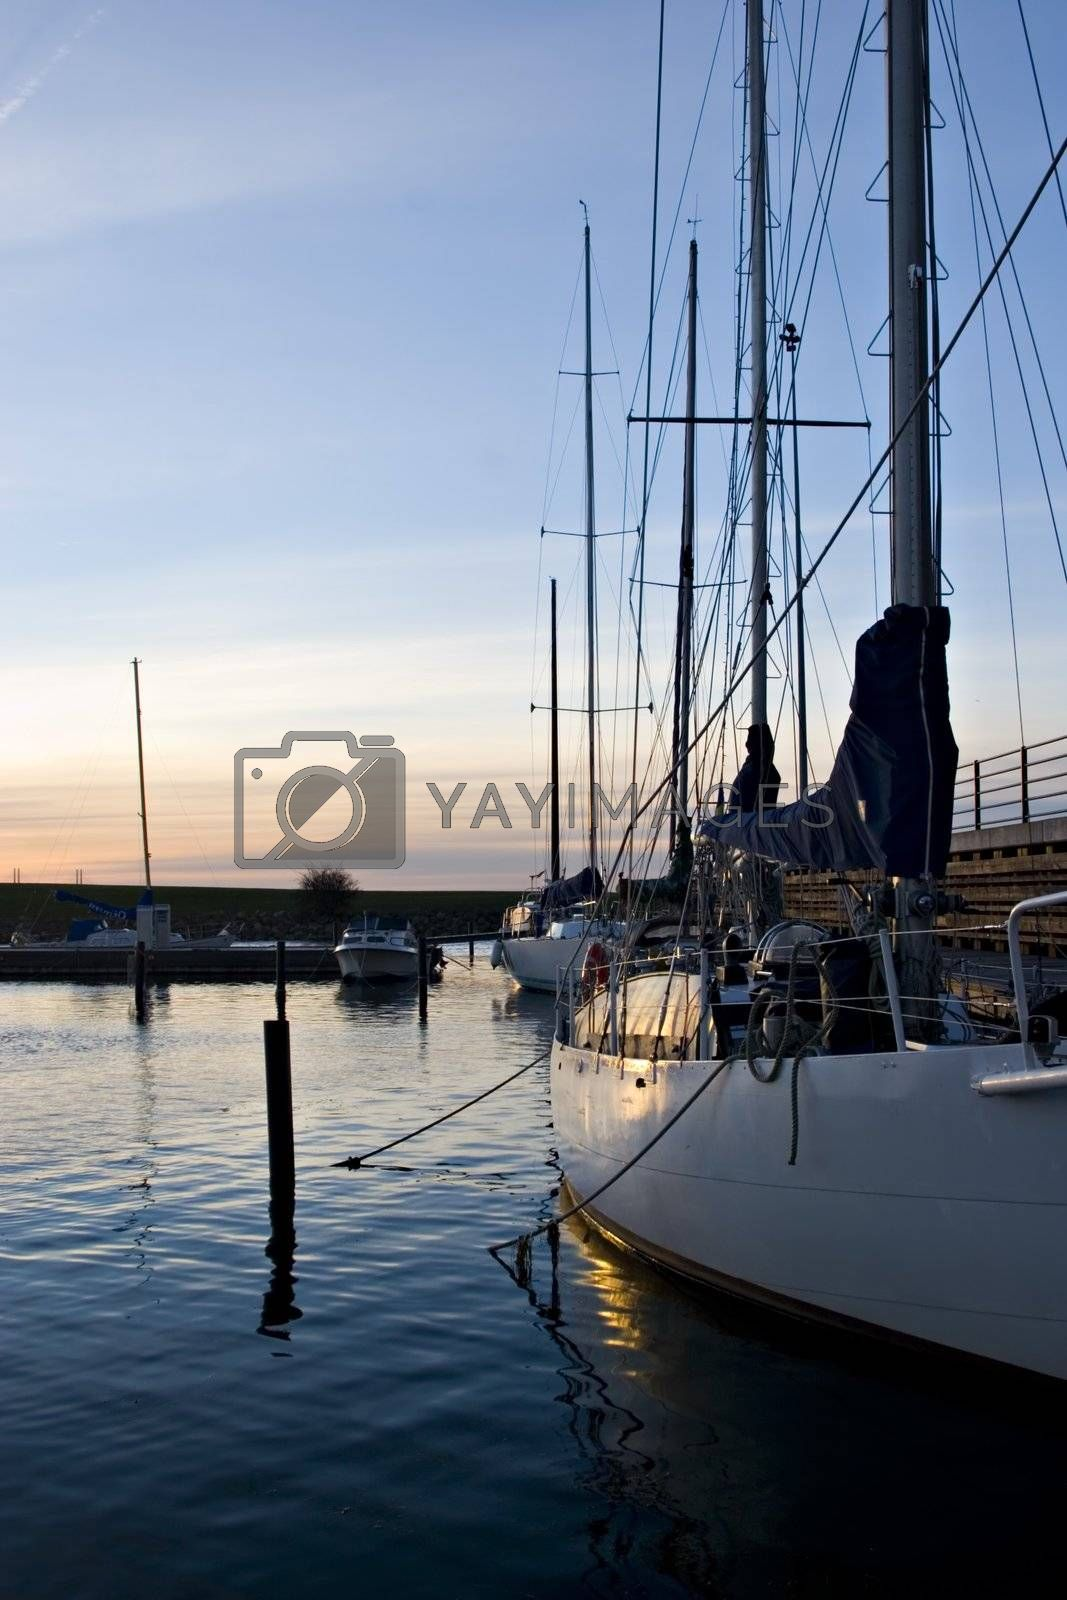 Yacht anchored on a marina in Malm�, Sweden at late afternoon light.